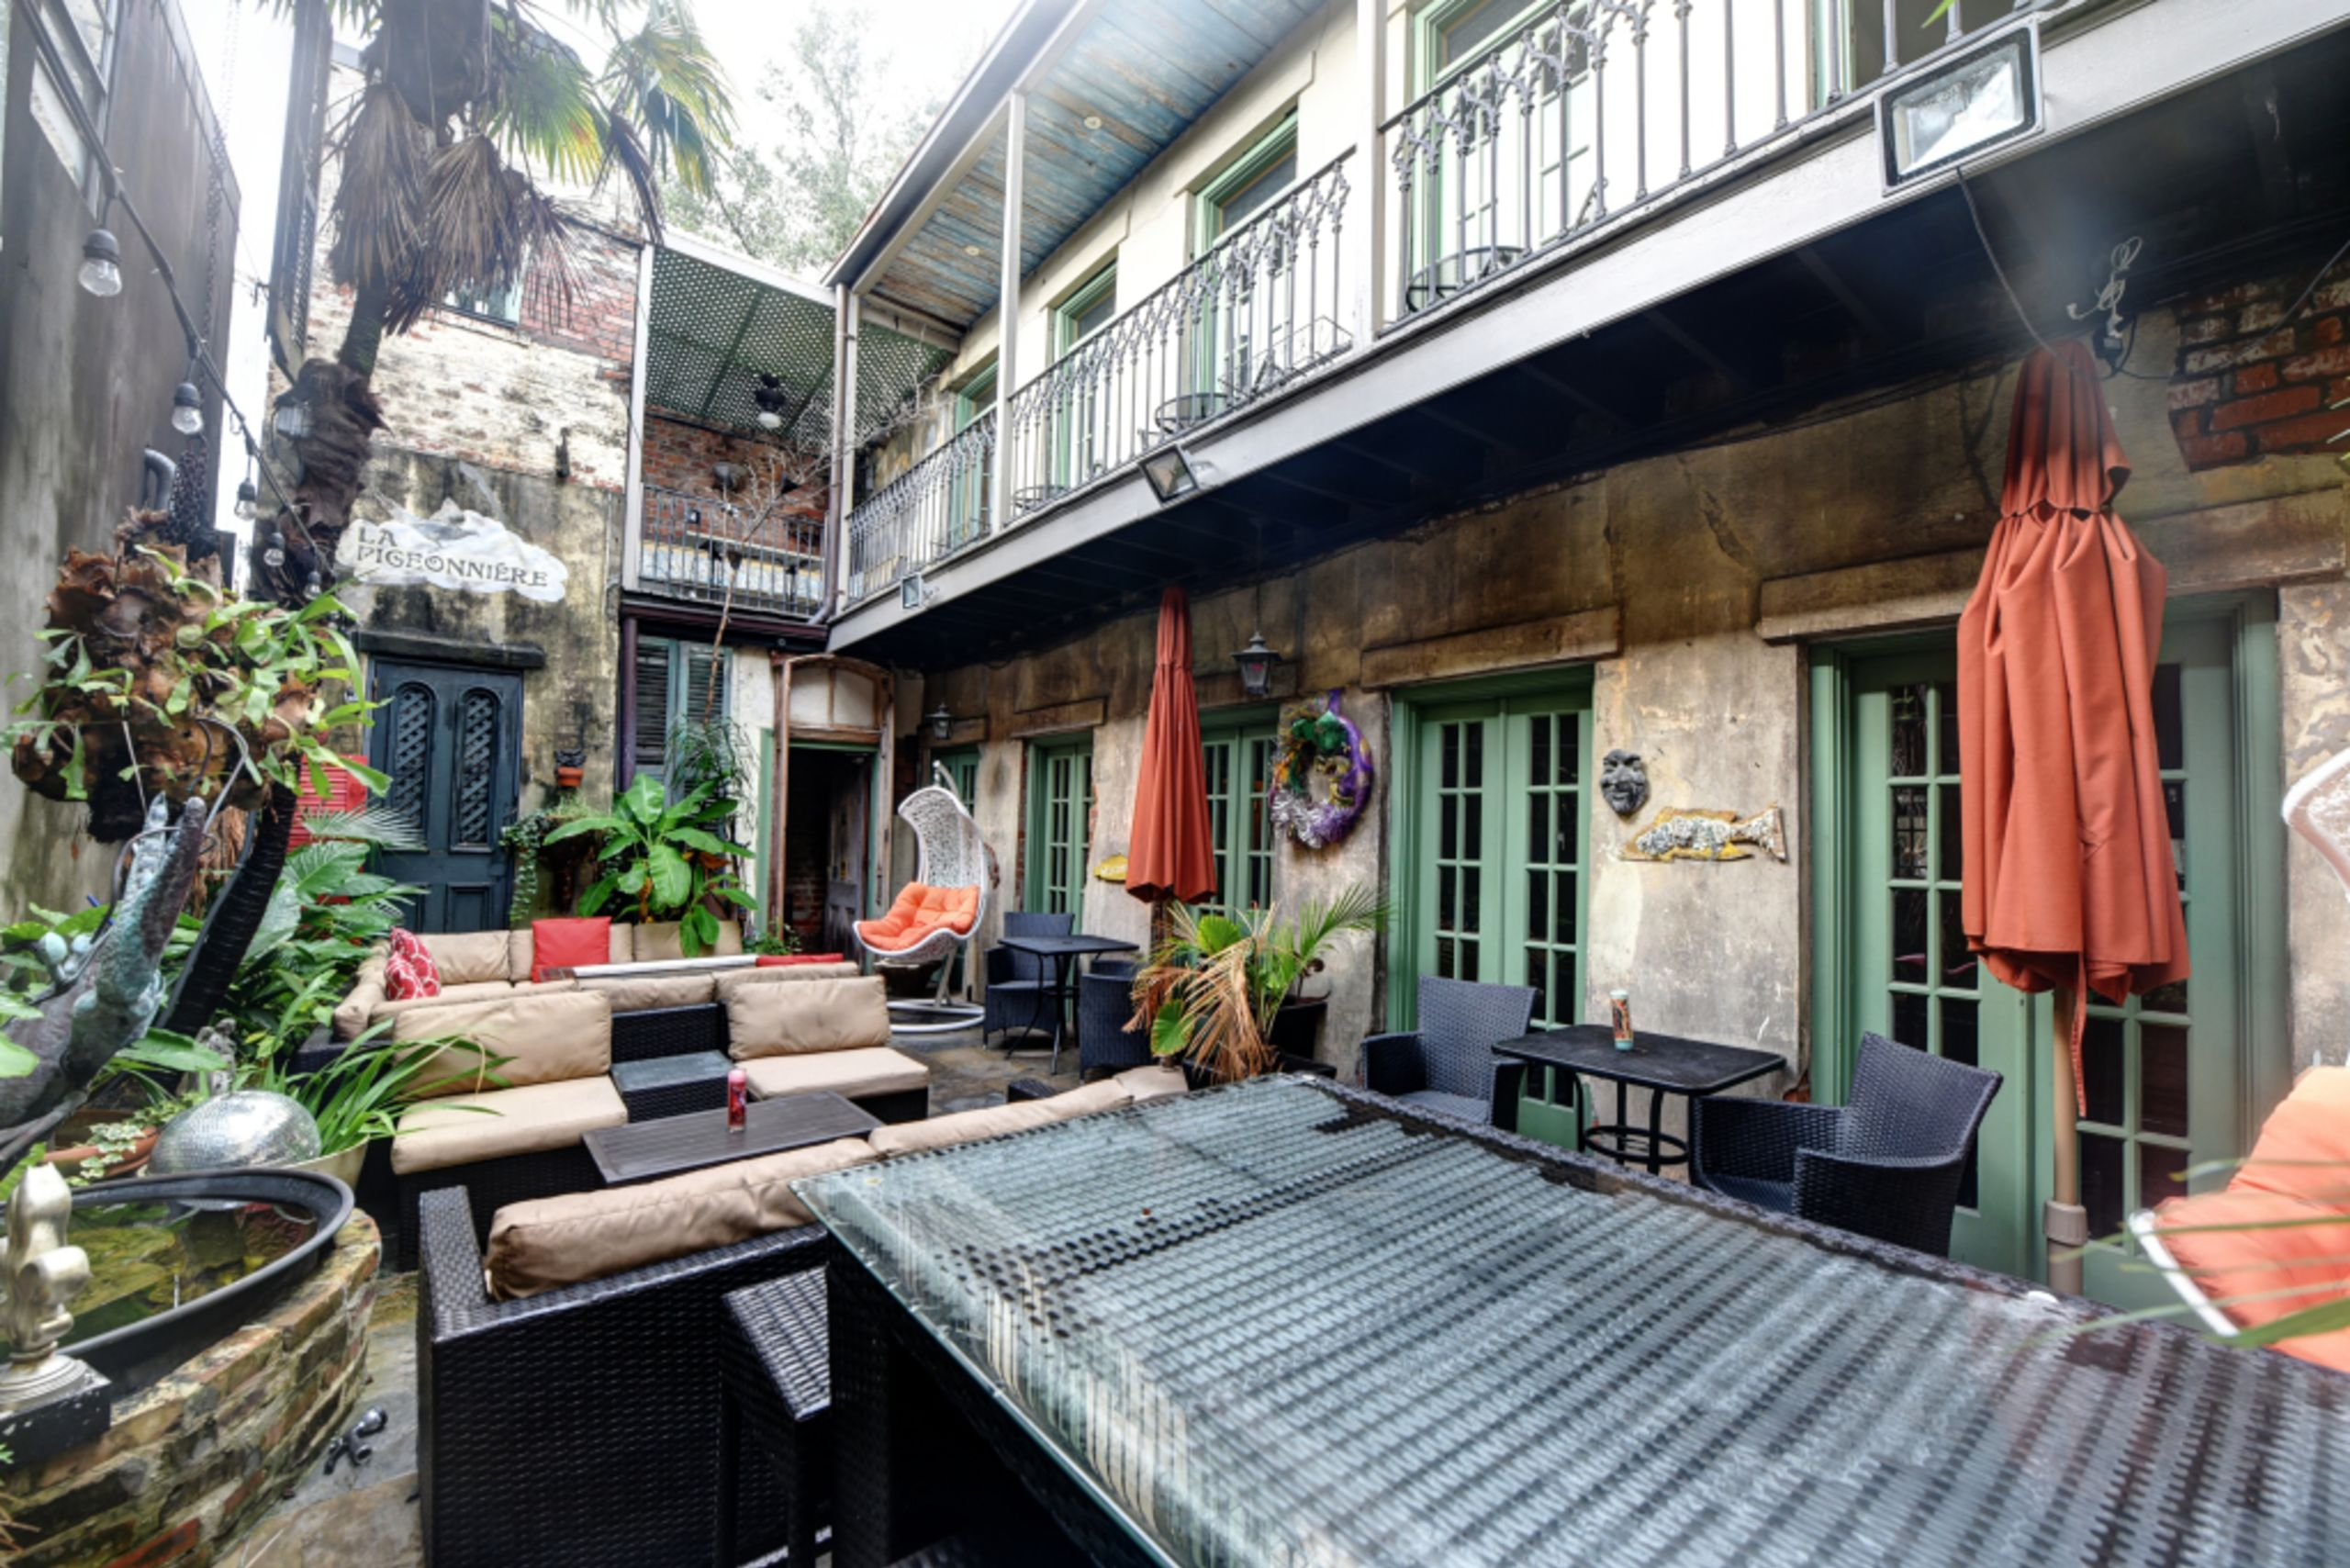 New Orleans French Quarter, Faubourg Marigny, Bywater, St Claude, St Roch, Musicians' Village, Holy Cross, downtown New Orleans properties